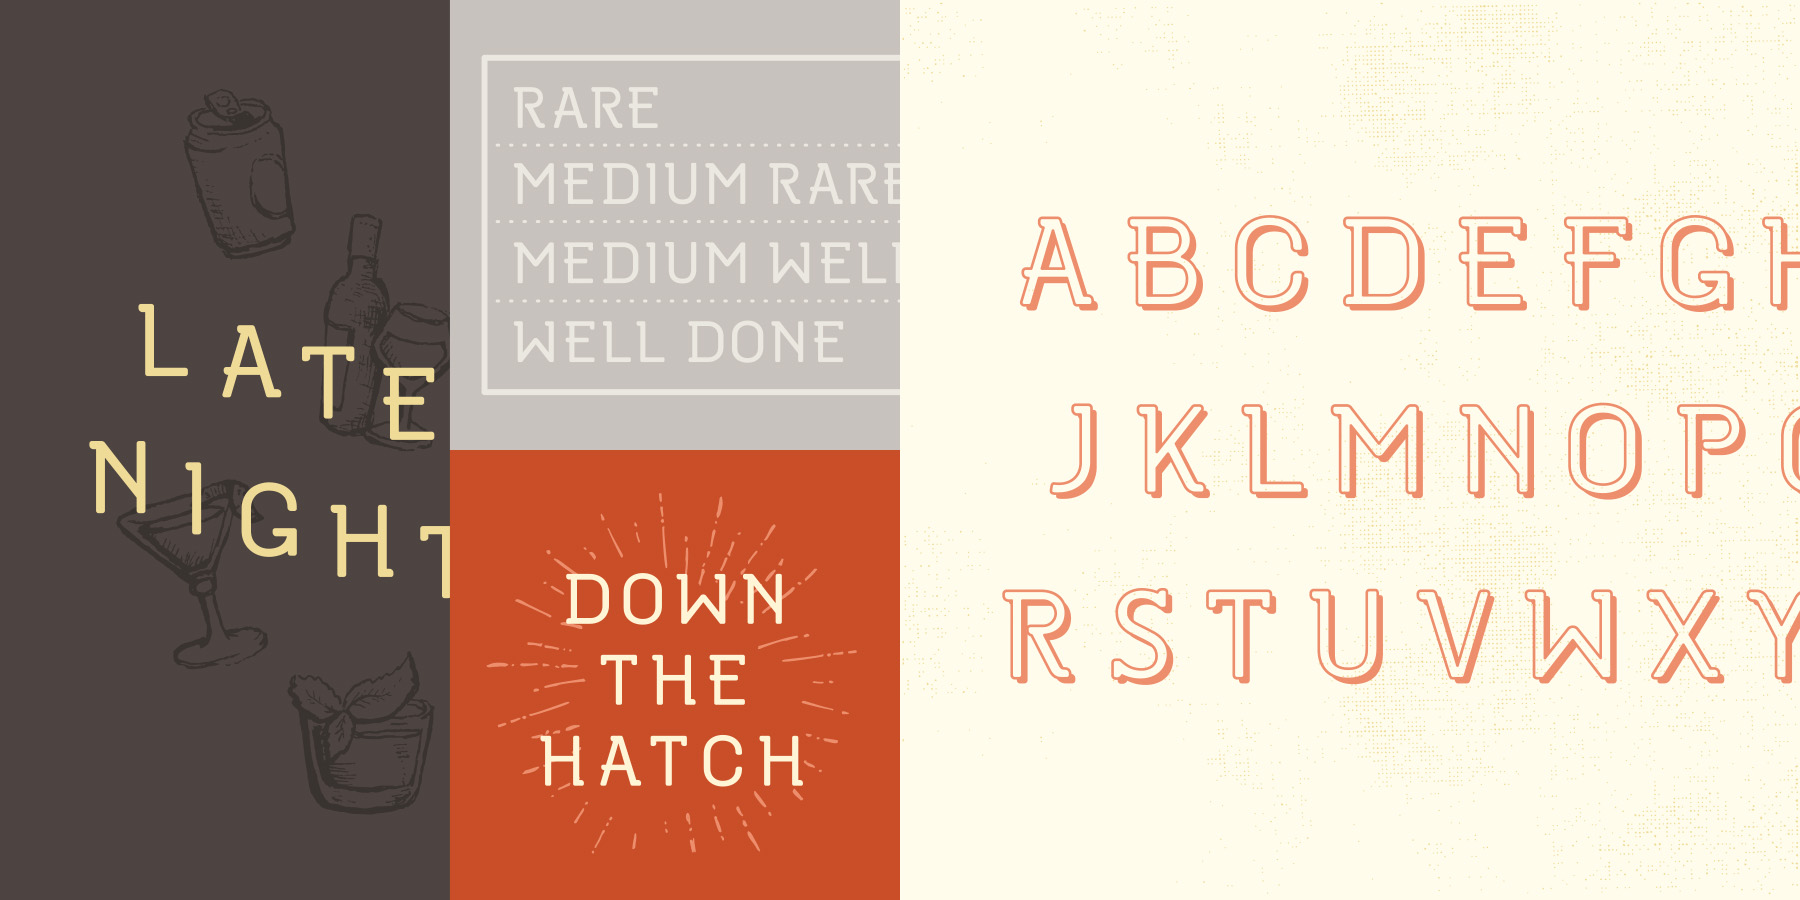 """Sample type specimen for custom font created and designed for the Oakblue Kitchen restaurant. Sample typography reads, """"Late Night, Rare Medium Rare Medium Well and Well Done, Down the Hatch."""""""